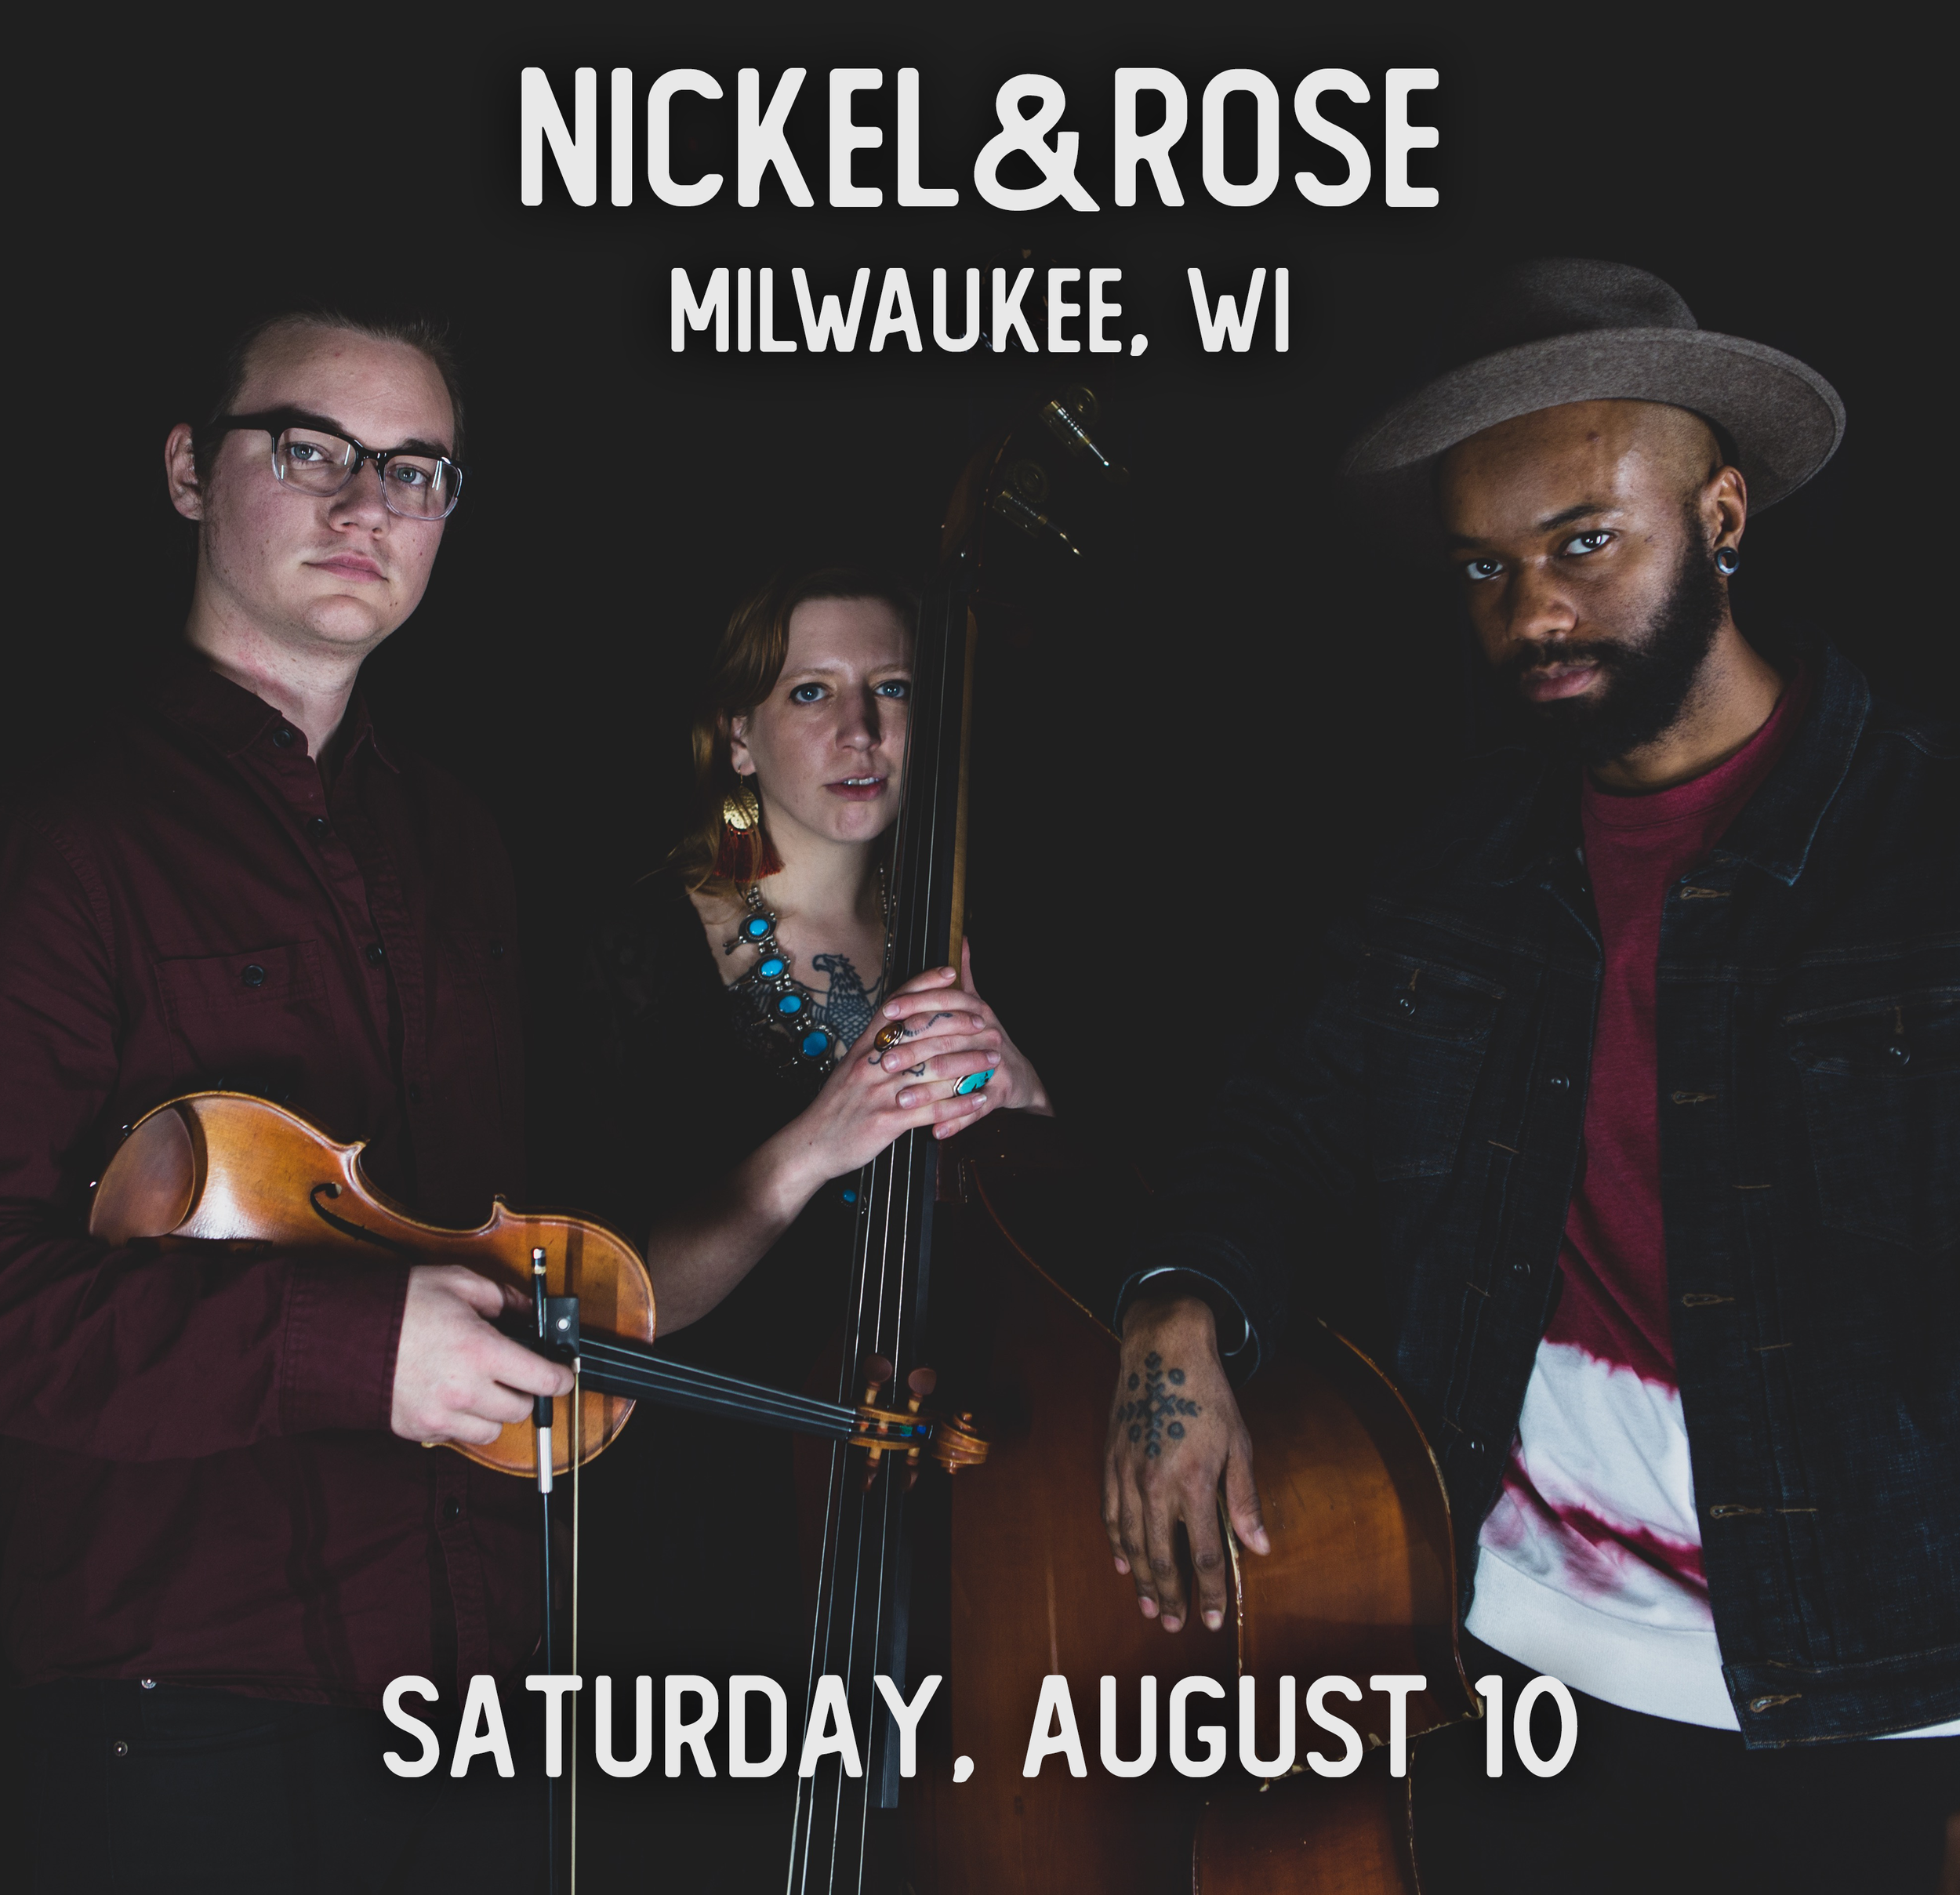 Nickel&Rose_Announce-Graphic-NOLOGO.png